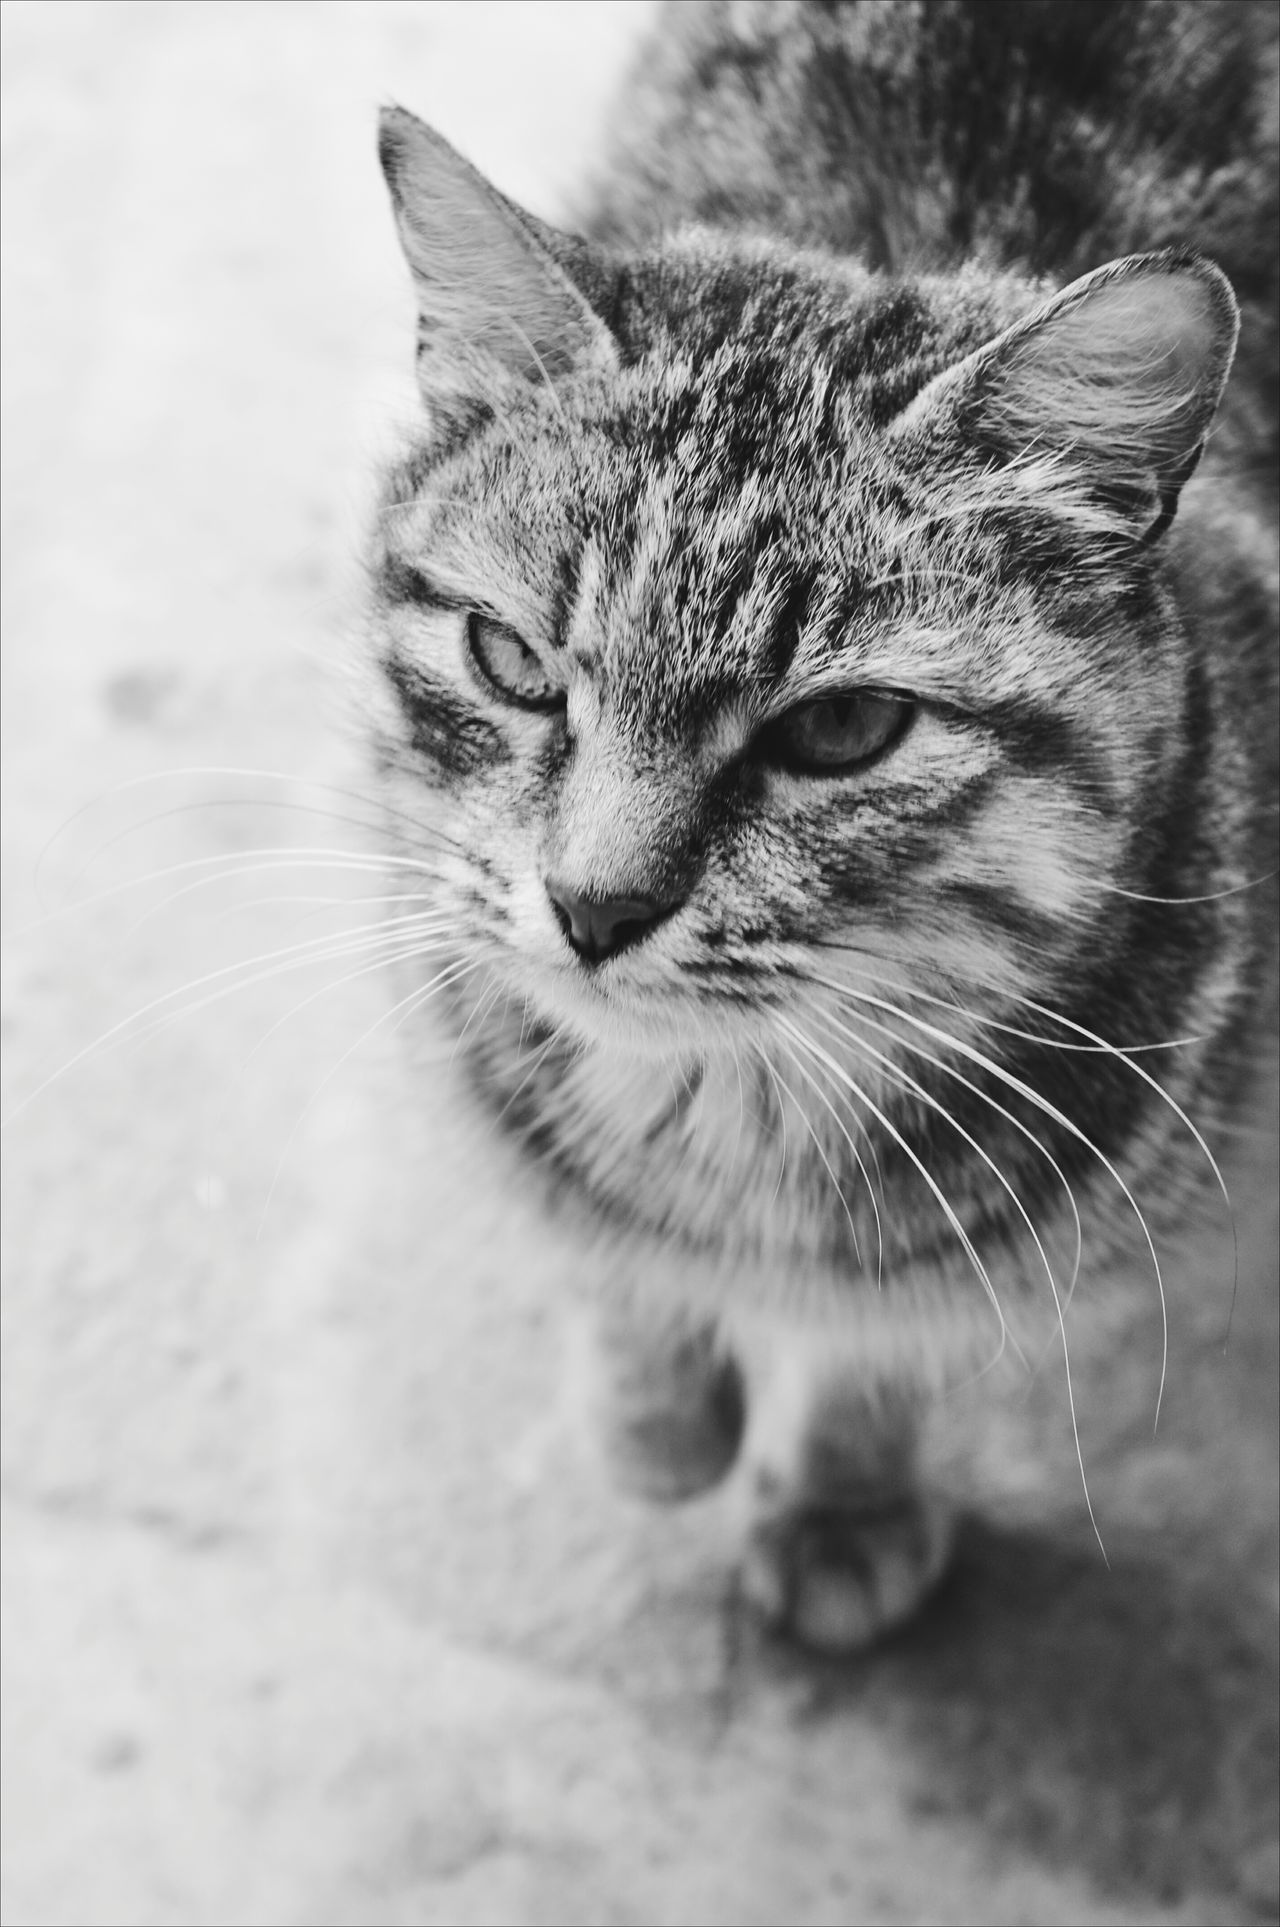 Animal Themes Blackandwhite Blackandwhite Photography Cat Close-up Day Domestic Animals Domestic Cat EyeEm Best Shots Indoors  Mammal No People One Animal Pets The Week Of Eyeem